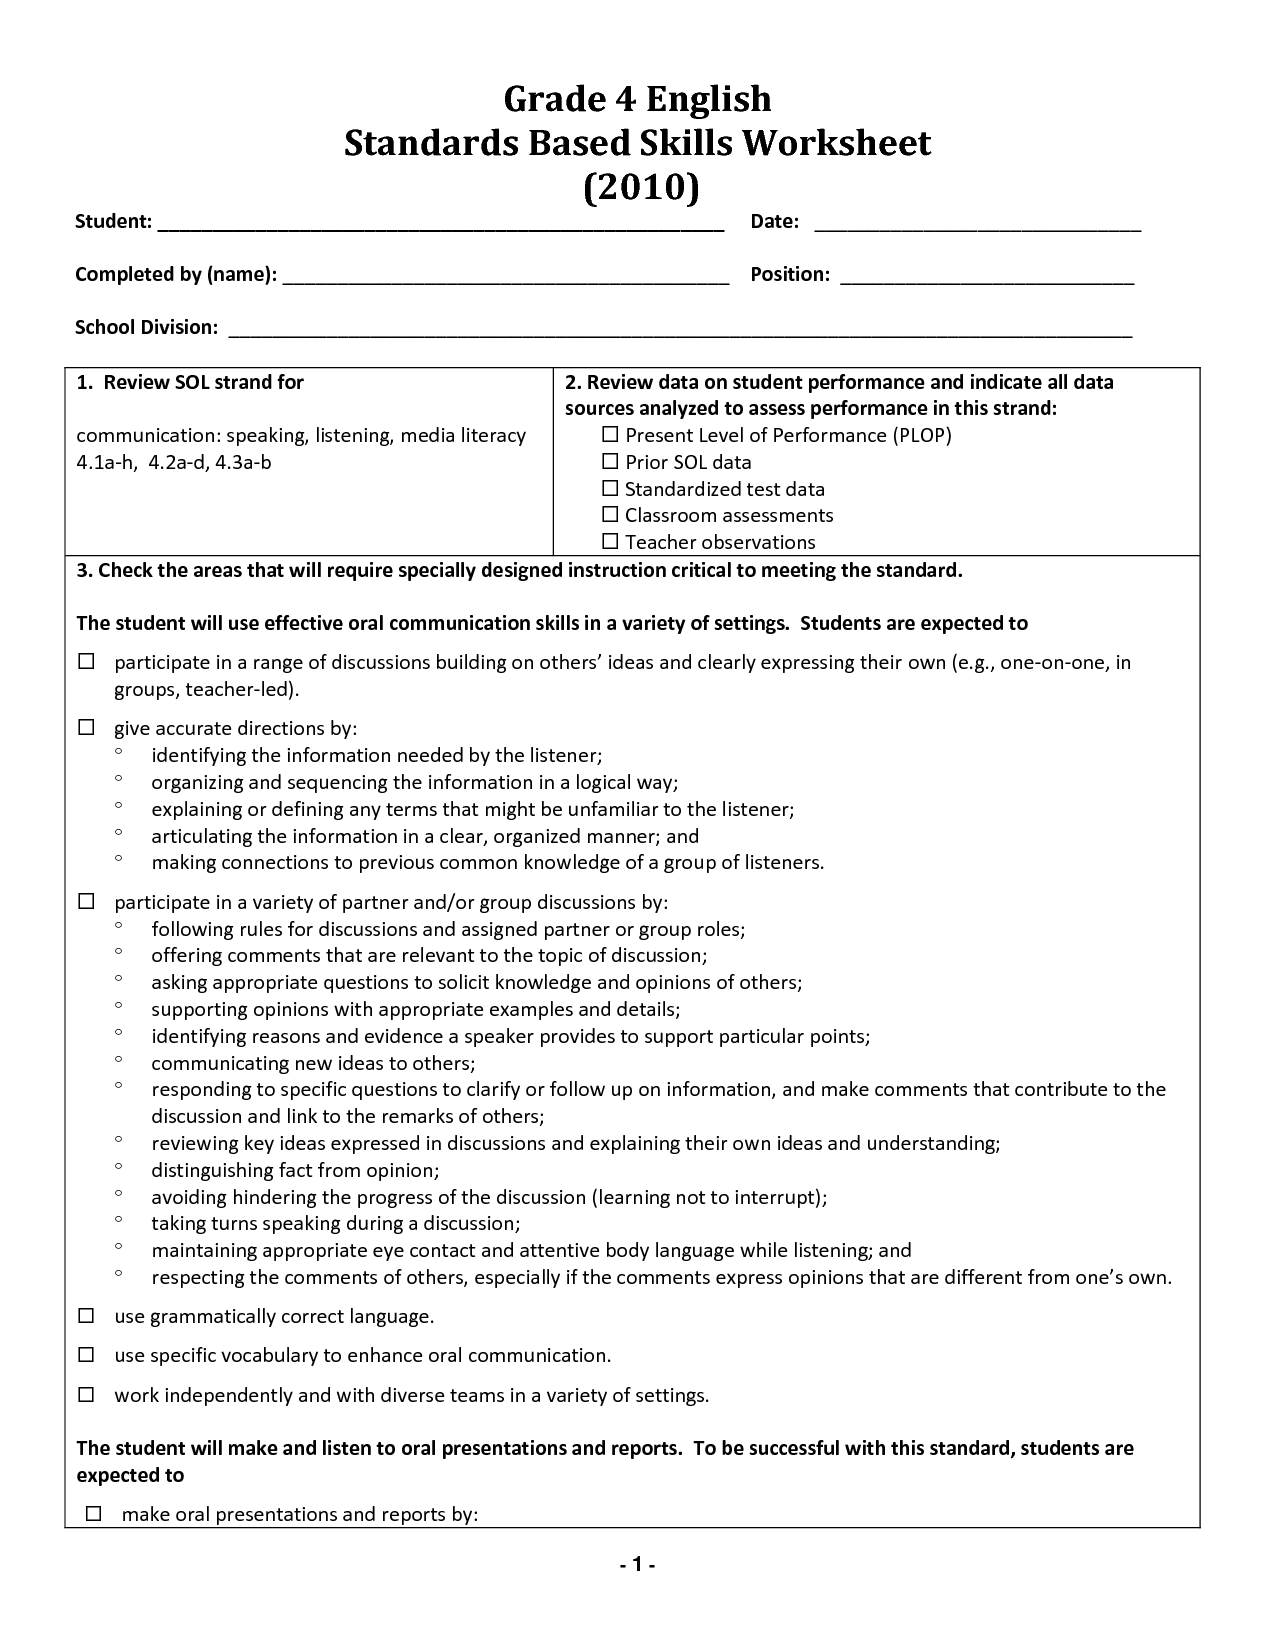 19 Best Images Of Printable English Worksheets 7th Grade